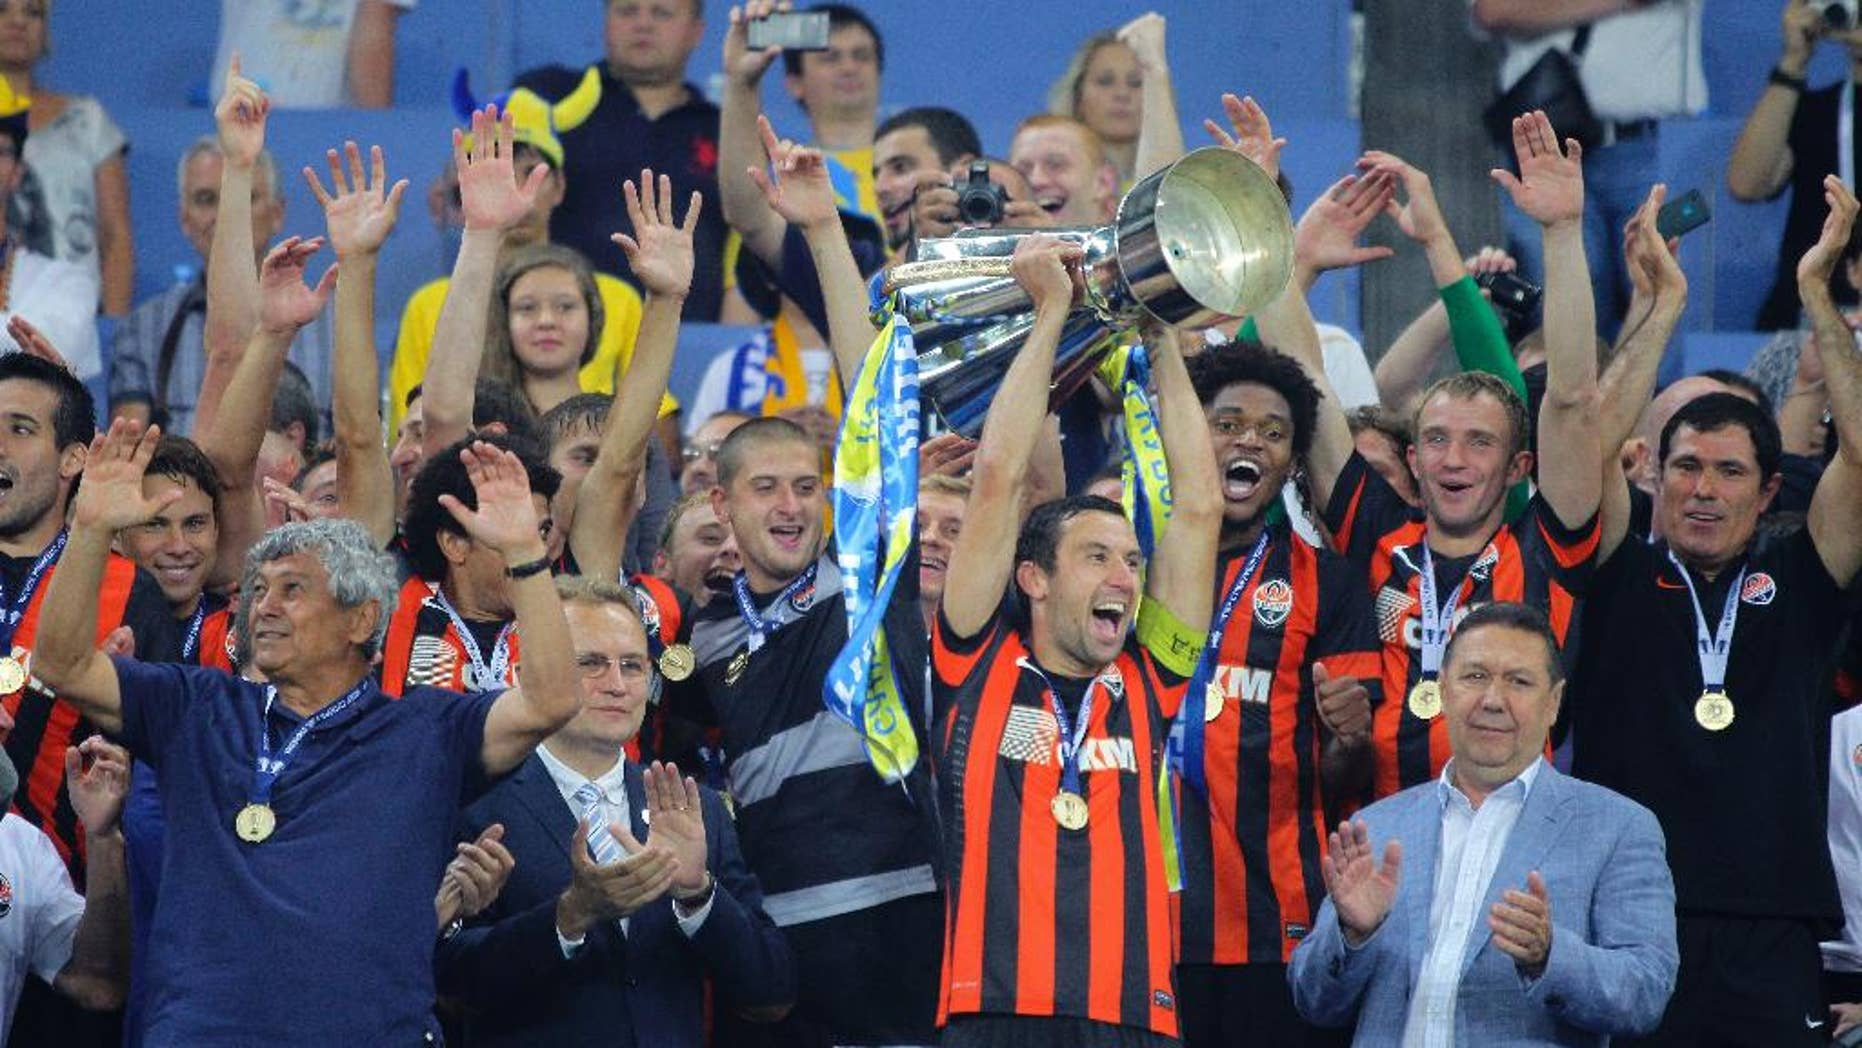 Dario Srna of Shakhtar Donetsk lifts up Ukraine's soccer Super Cup after their victory against Dynamo Kiev at Lviv Arena in Lviv, Ukraine, Tuesday, July 22, 2014.  (AP Photo/Andrey Lukatsky)